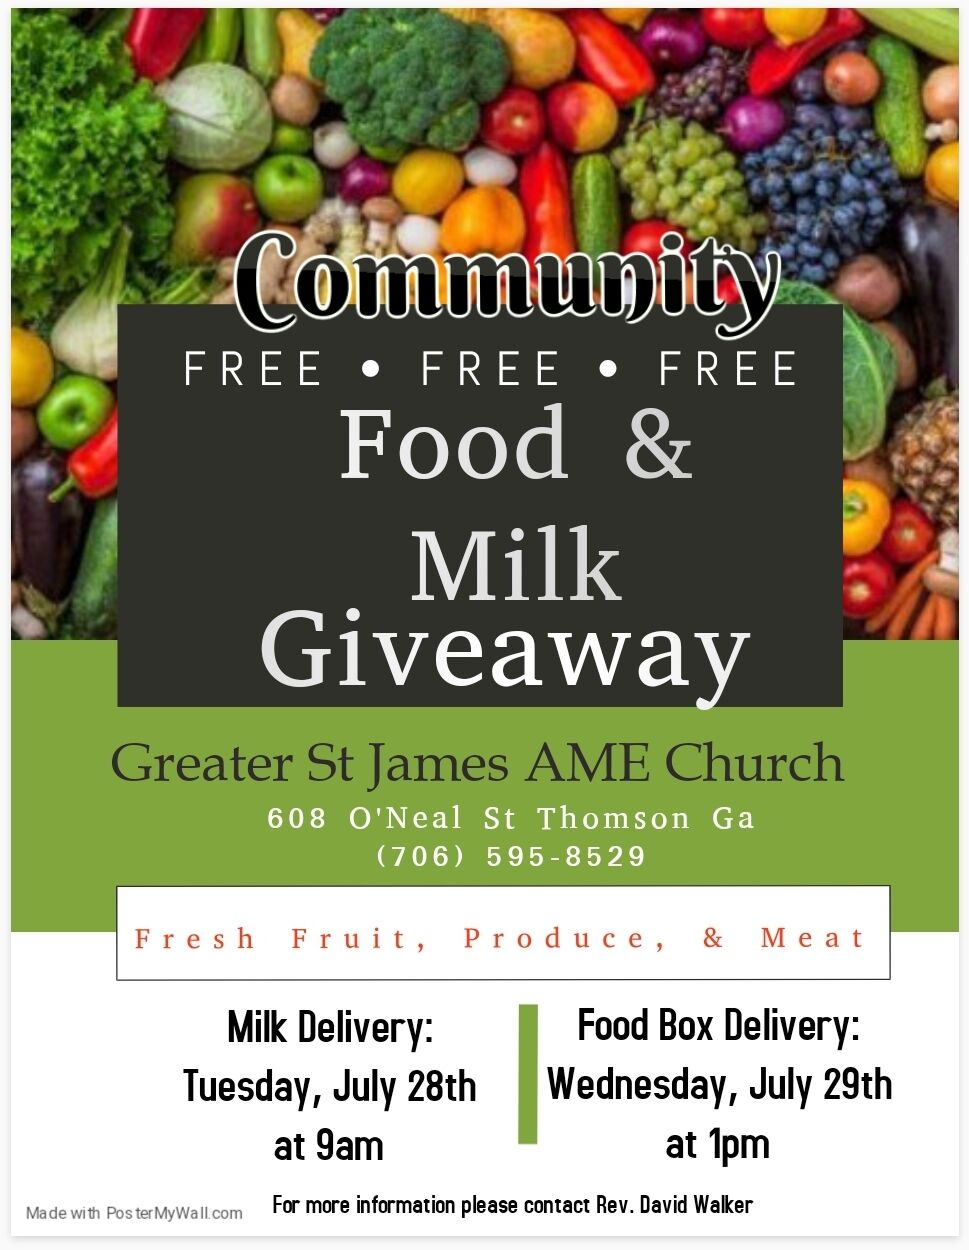 Church to provide free milk and food this week